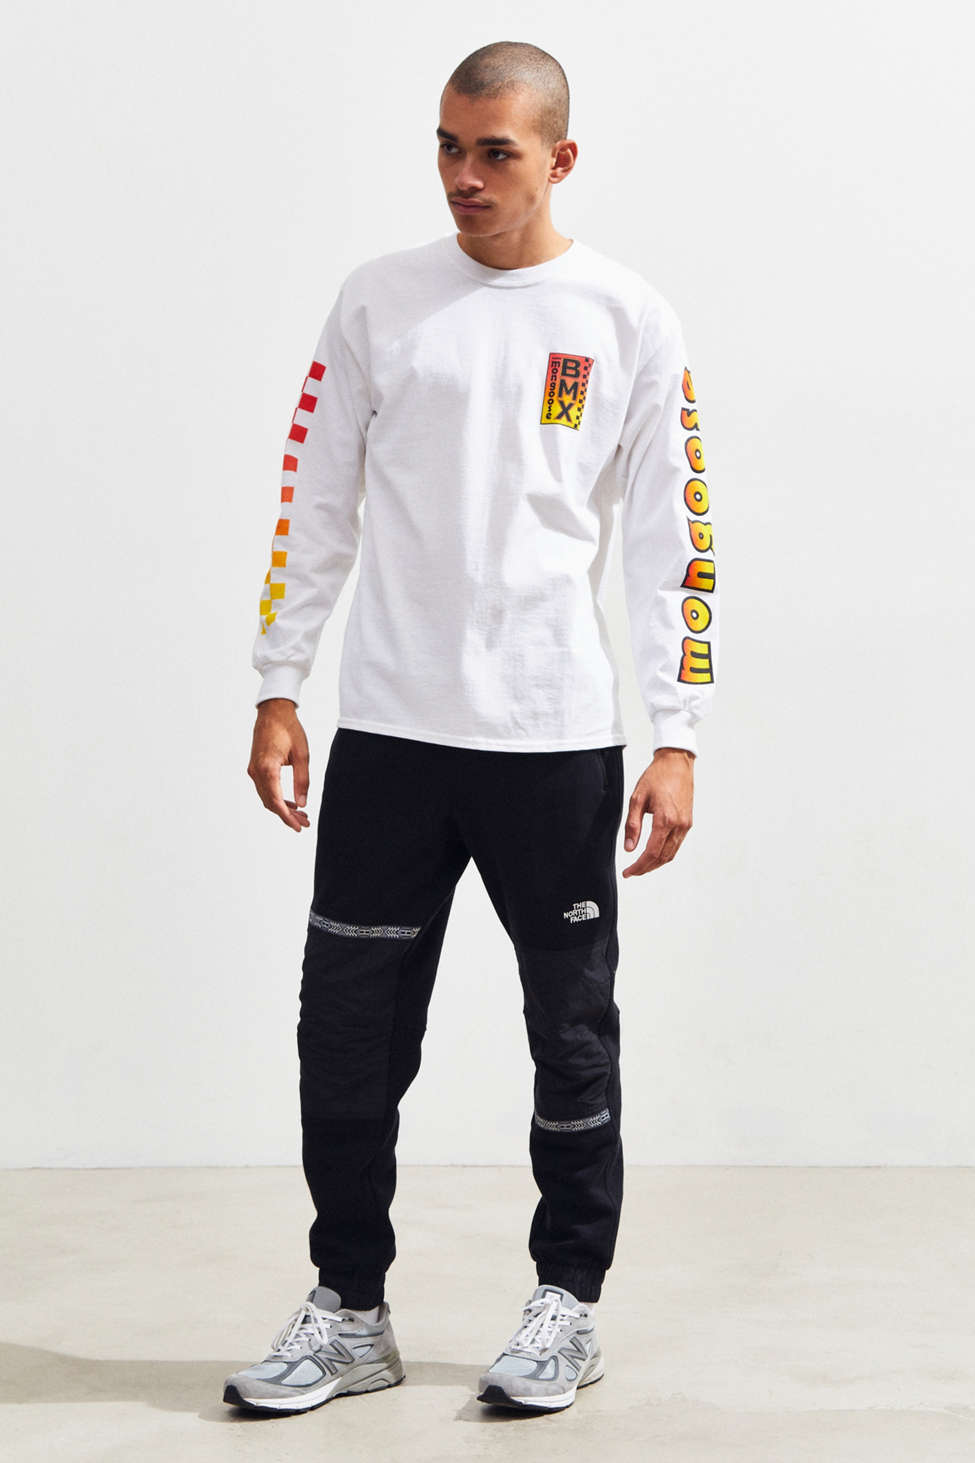 Mongoose Long Sleeve Tee by Urban Outfitters